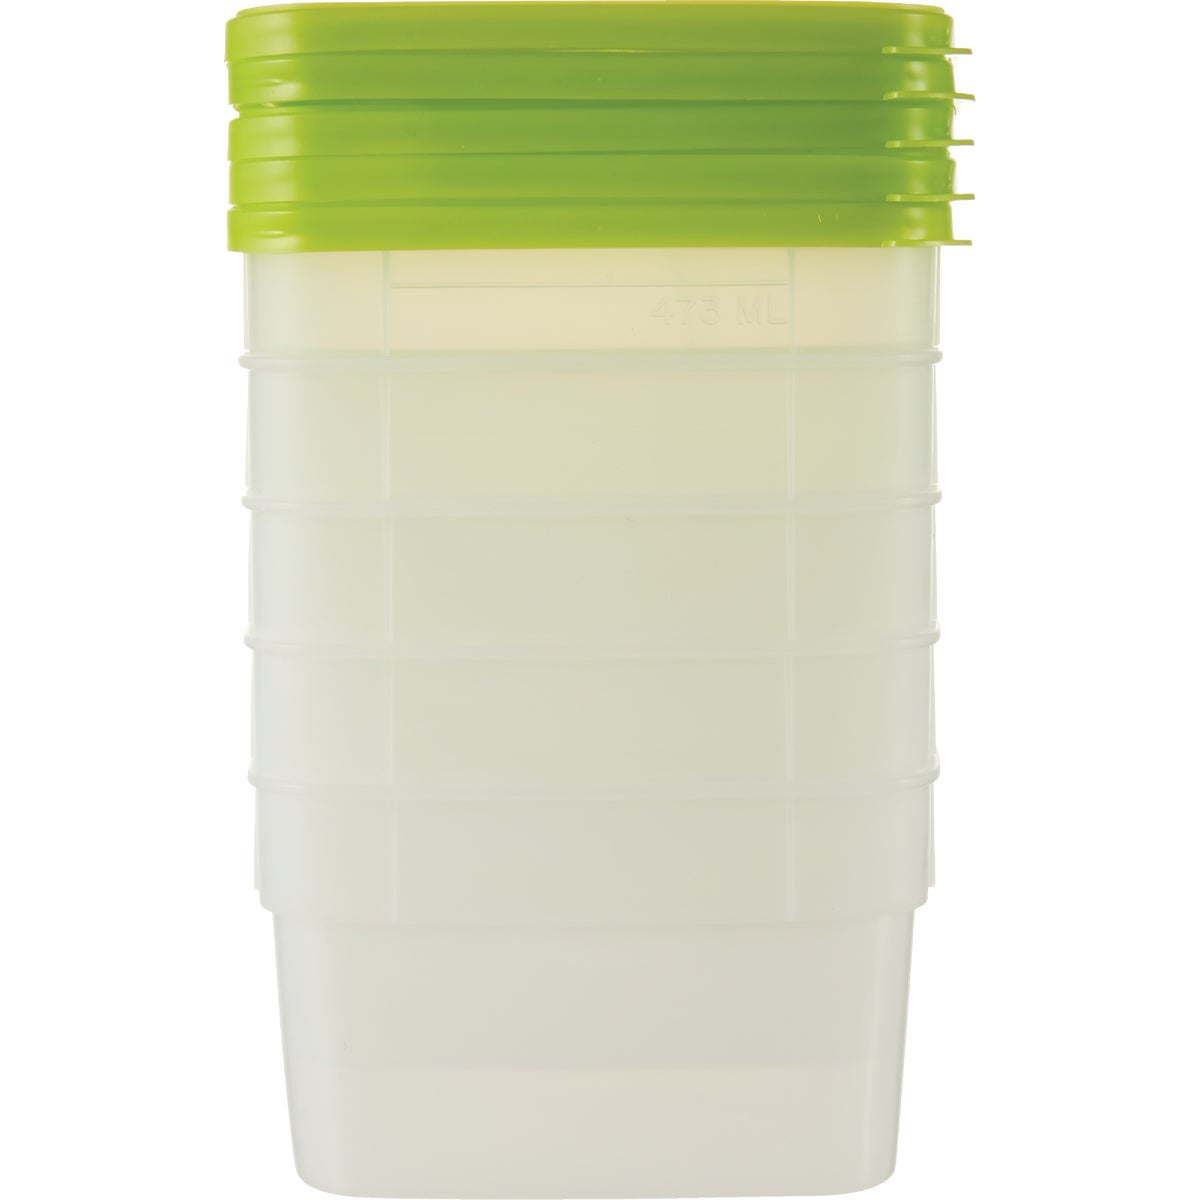 PINT STORAGE CONTAINER - 00042 by Arrow Plastic Mfg Co